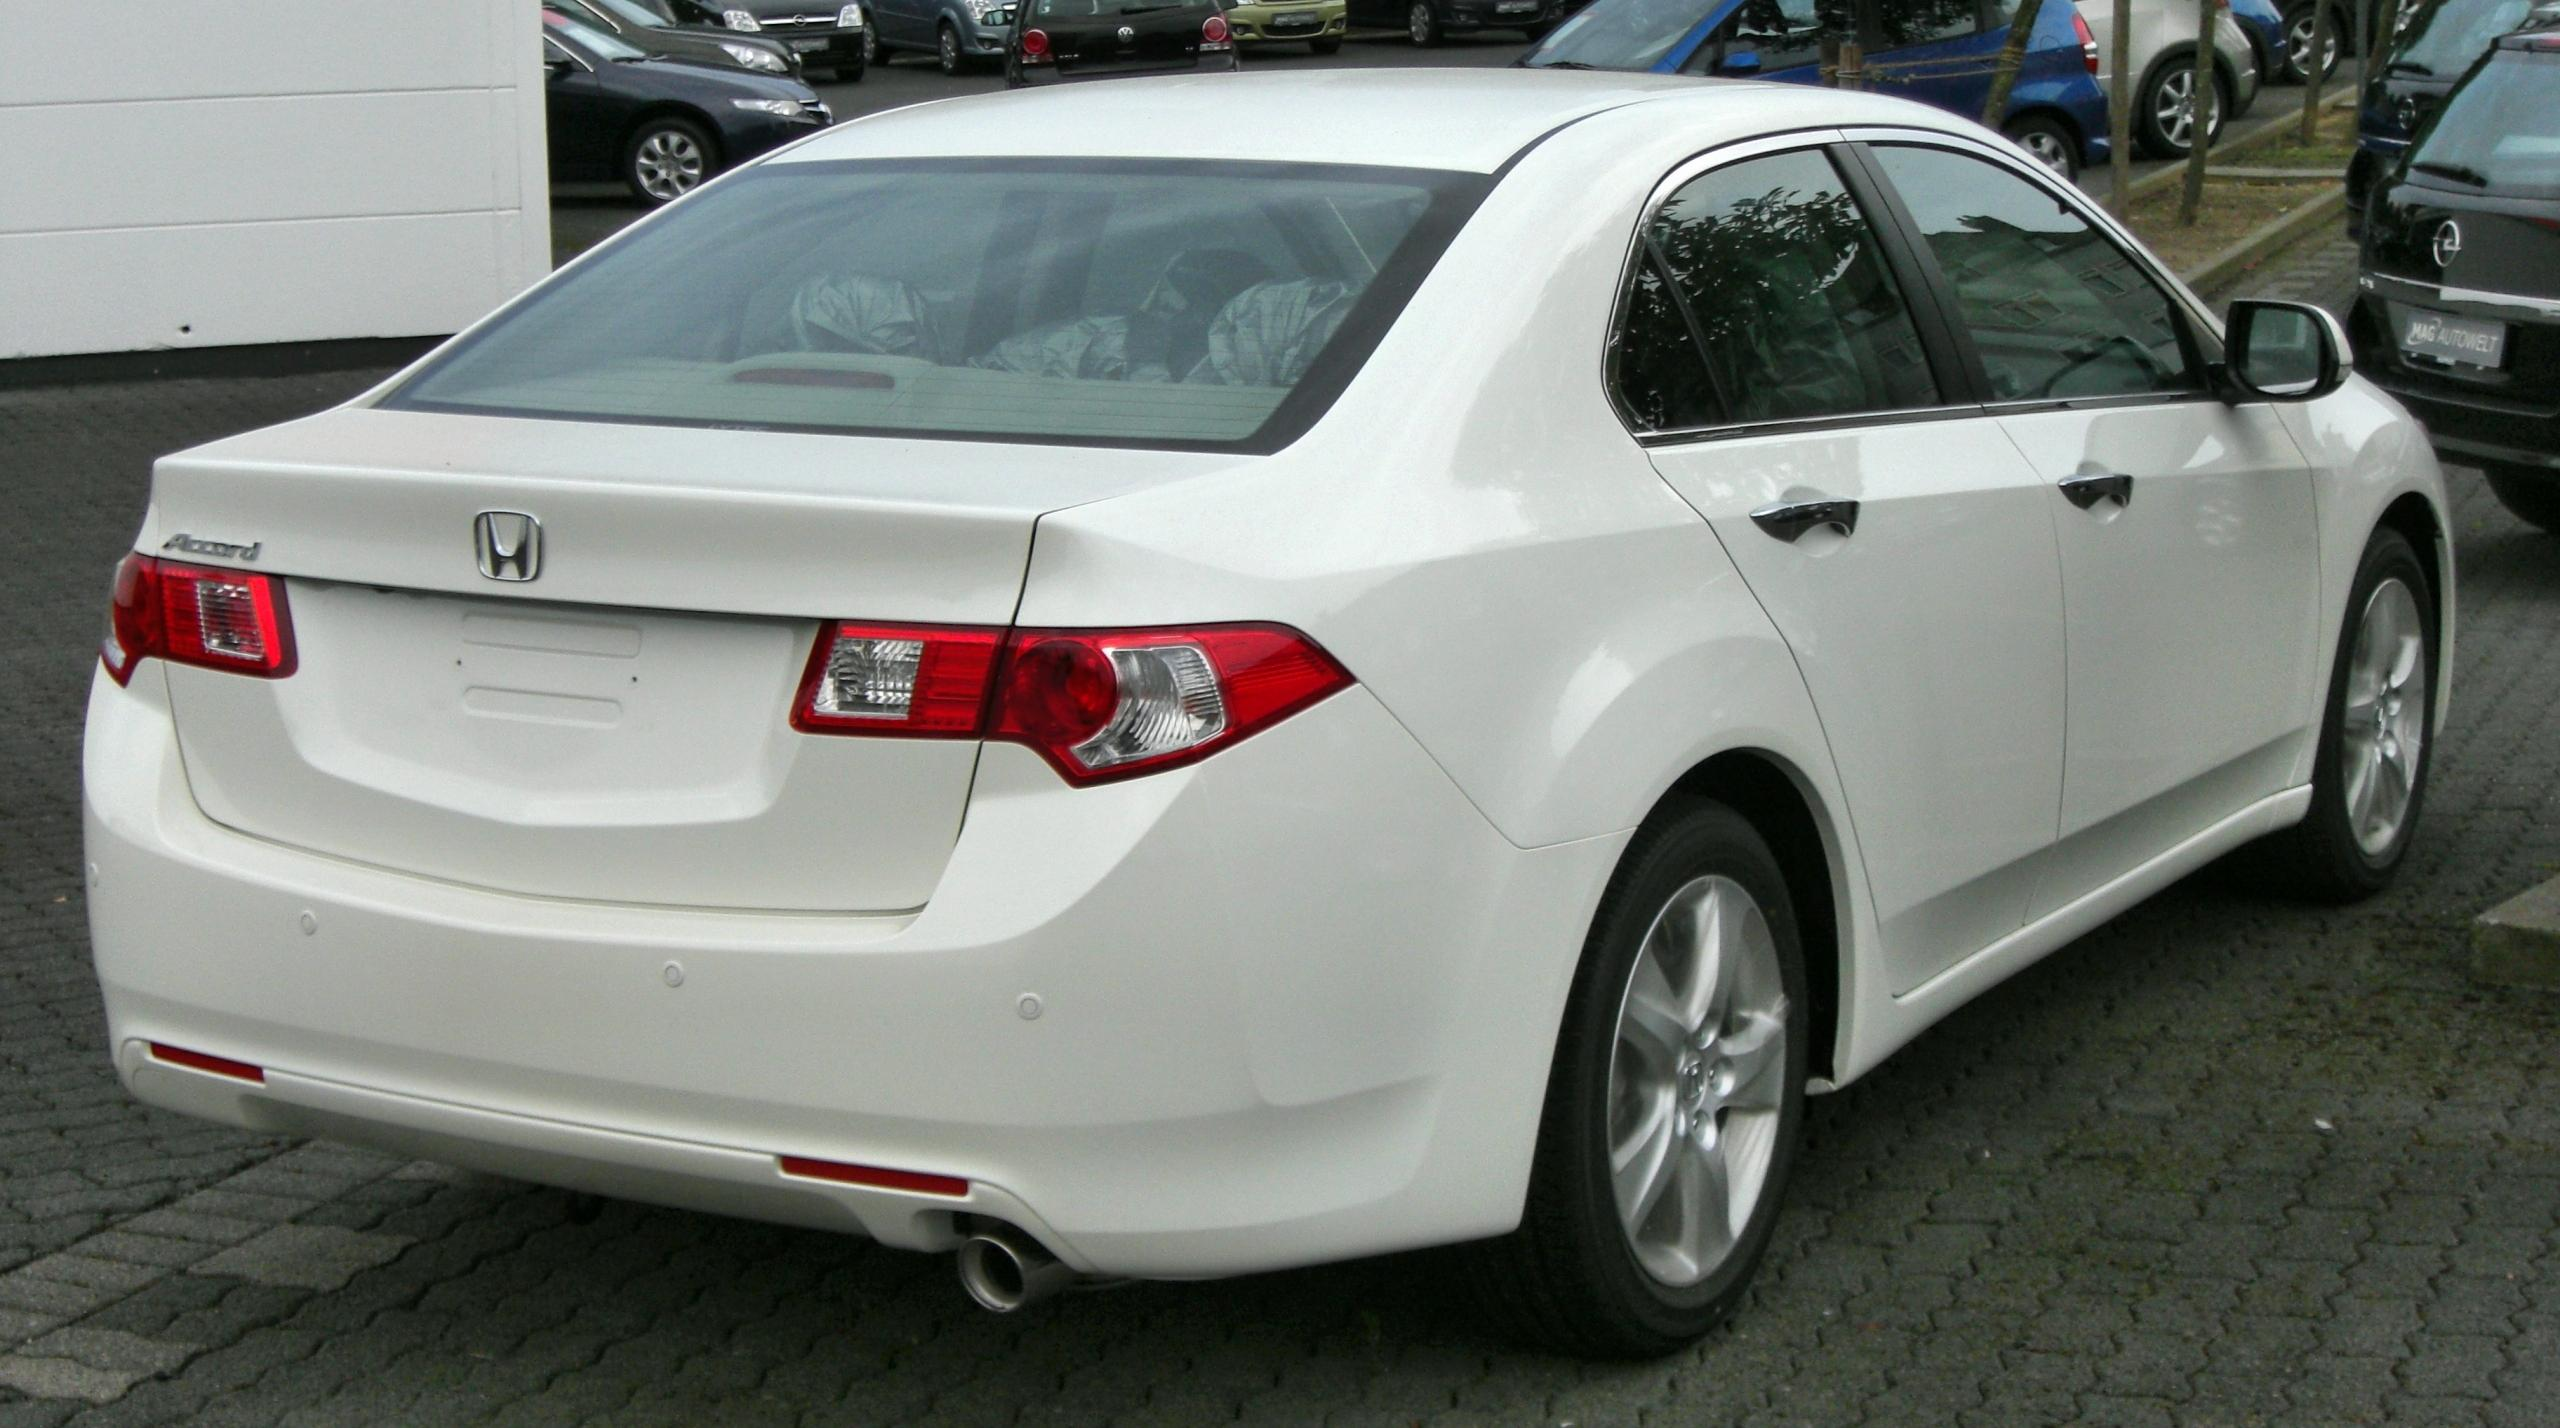 Honda Accord 2018 White >> File:Honda Accord (2008) rear.JPG - Wikimedia Commons